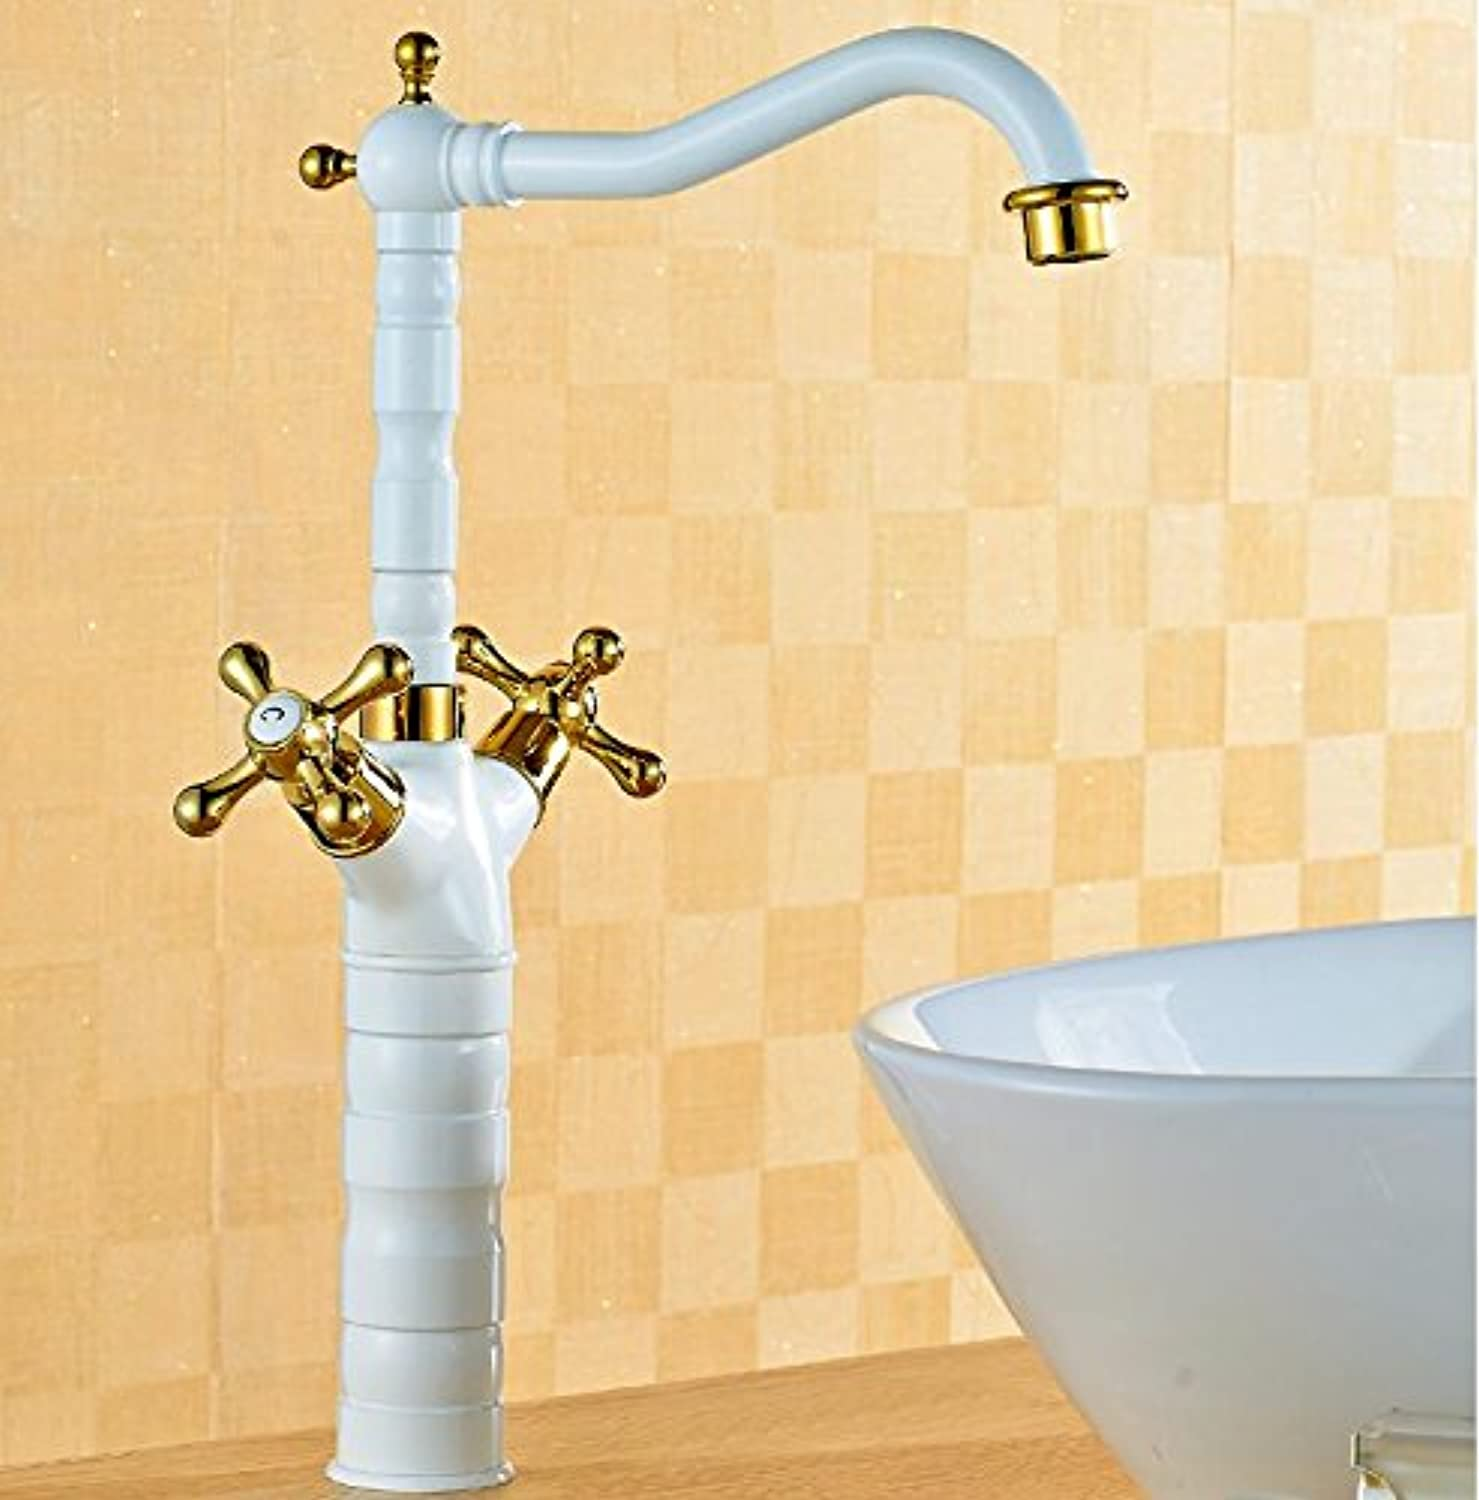 Maifeini Taps, Taps, Taps, High-Quality White And gold Water Tap Classic New Bathroom Basin Mixer Deck Install Bathroom Sink Mixer, And Tall White